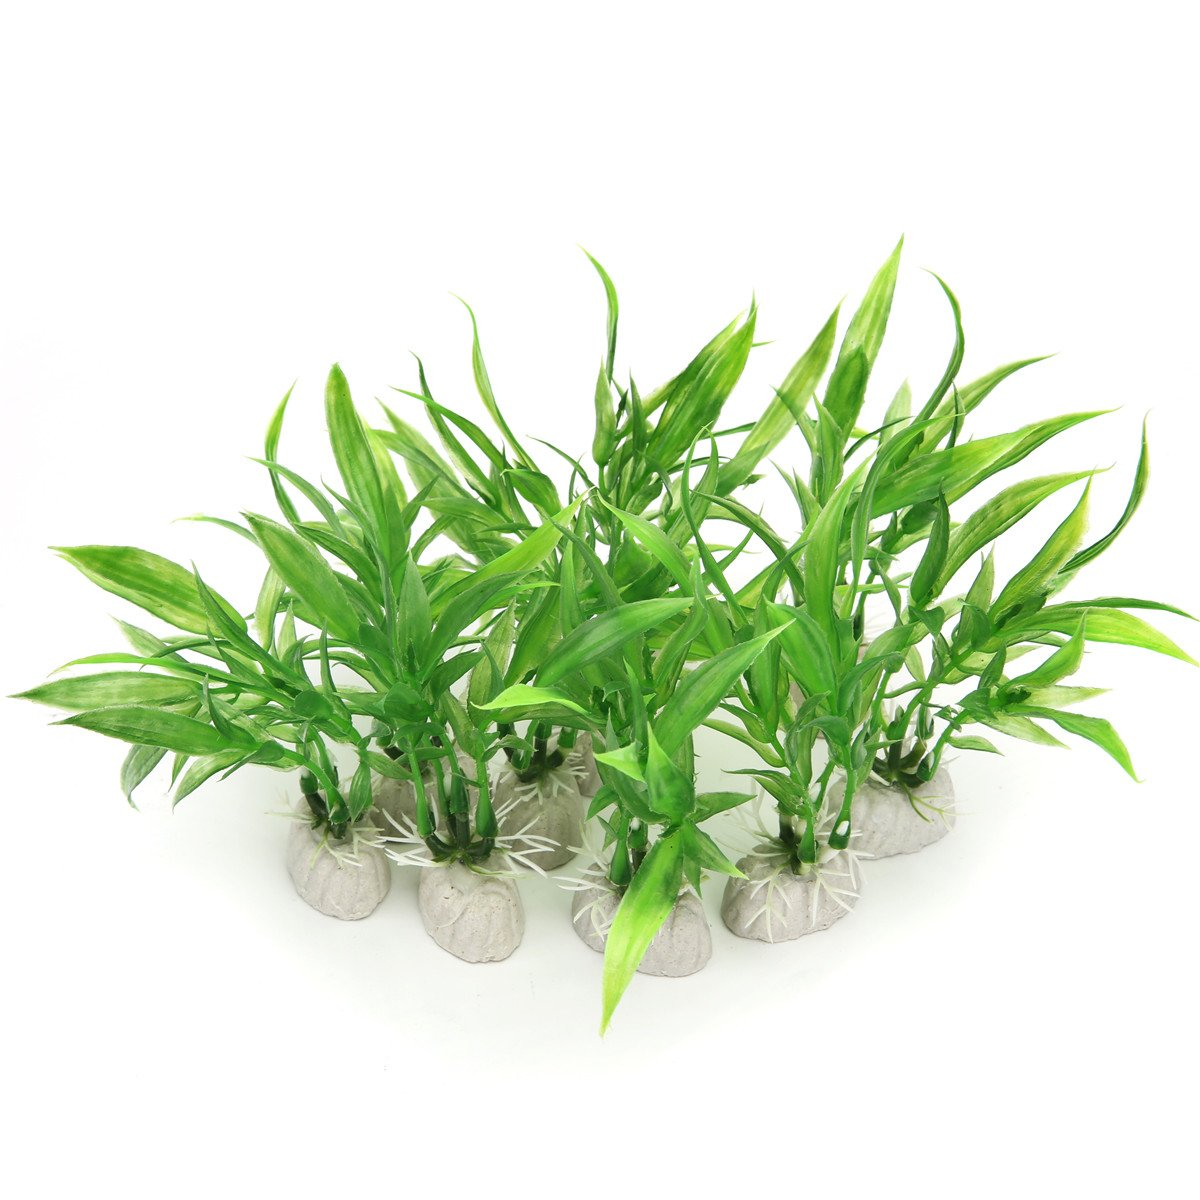 10 Pack Artificial Aquarium Plants, Small Size 4 inch Approximate Height Comsun Fish Tank Decorations Home Décor Plastic